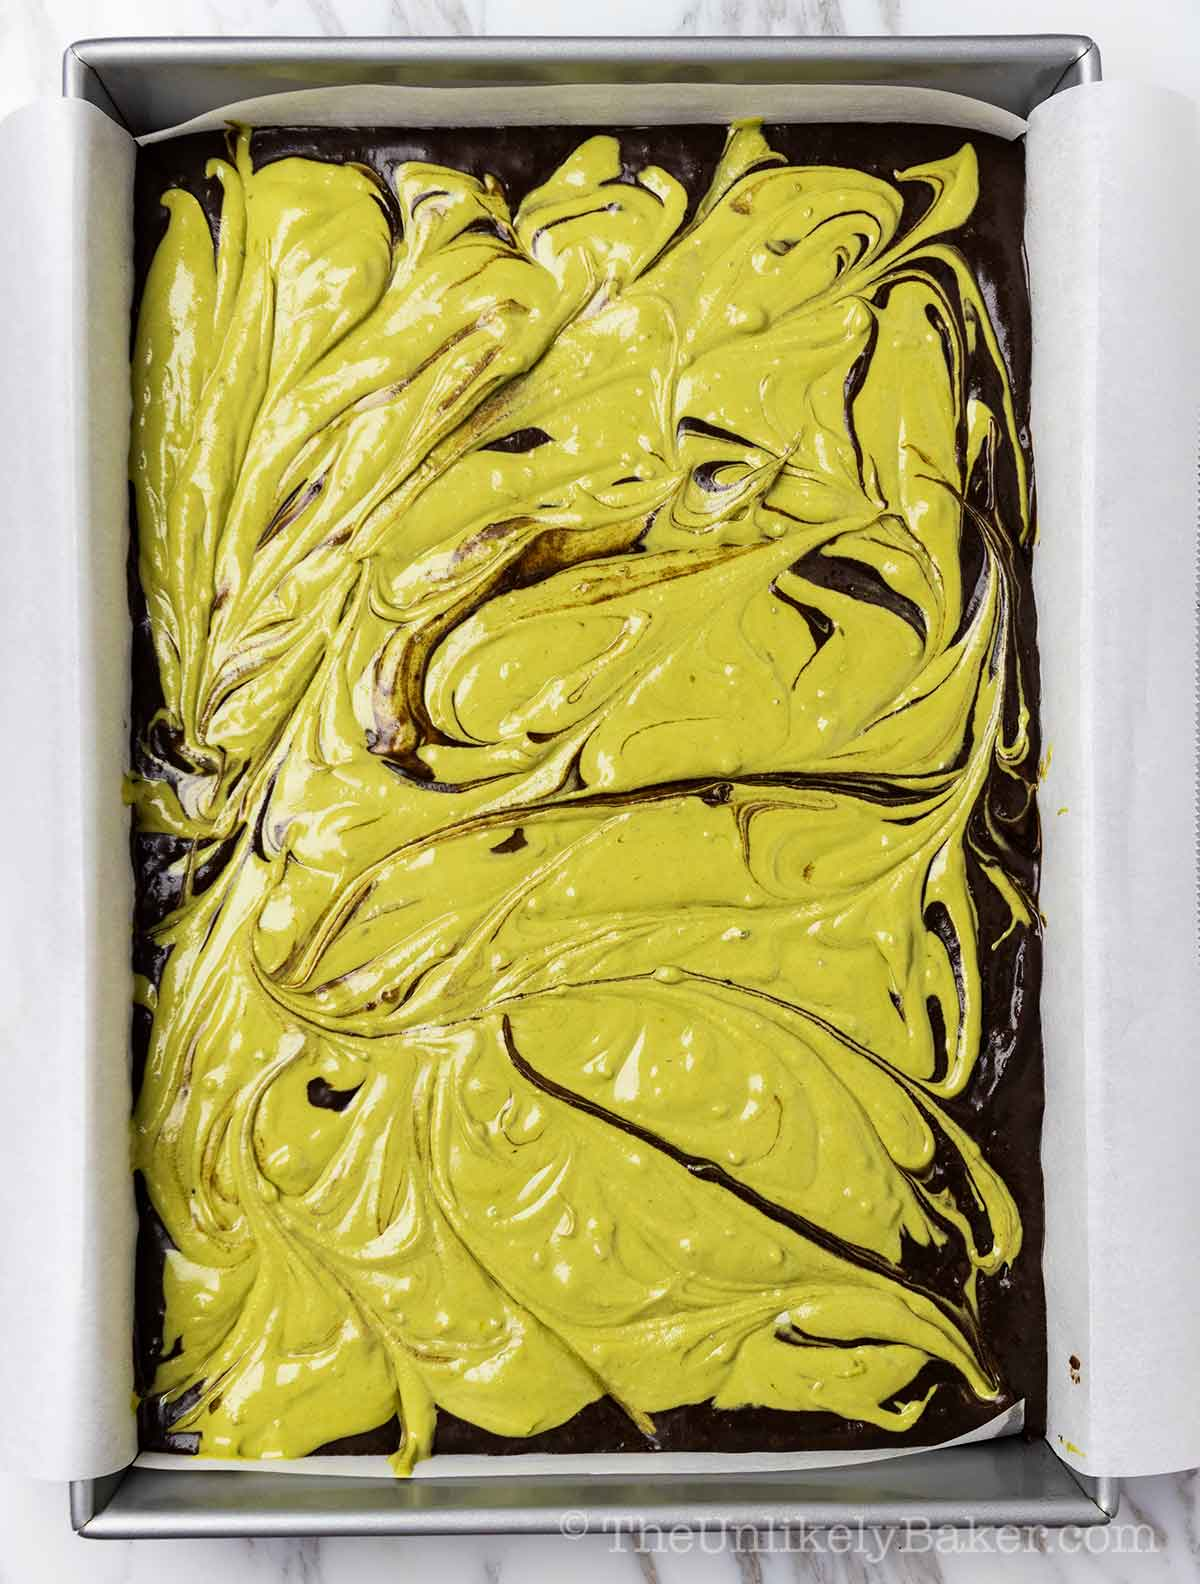 Matcha brownies ready for the oven